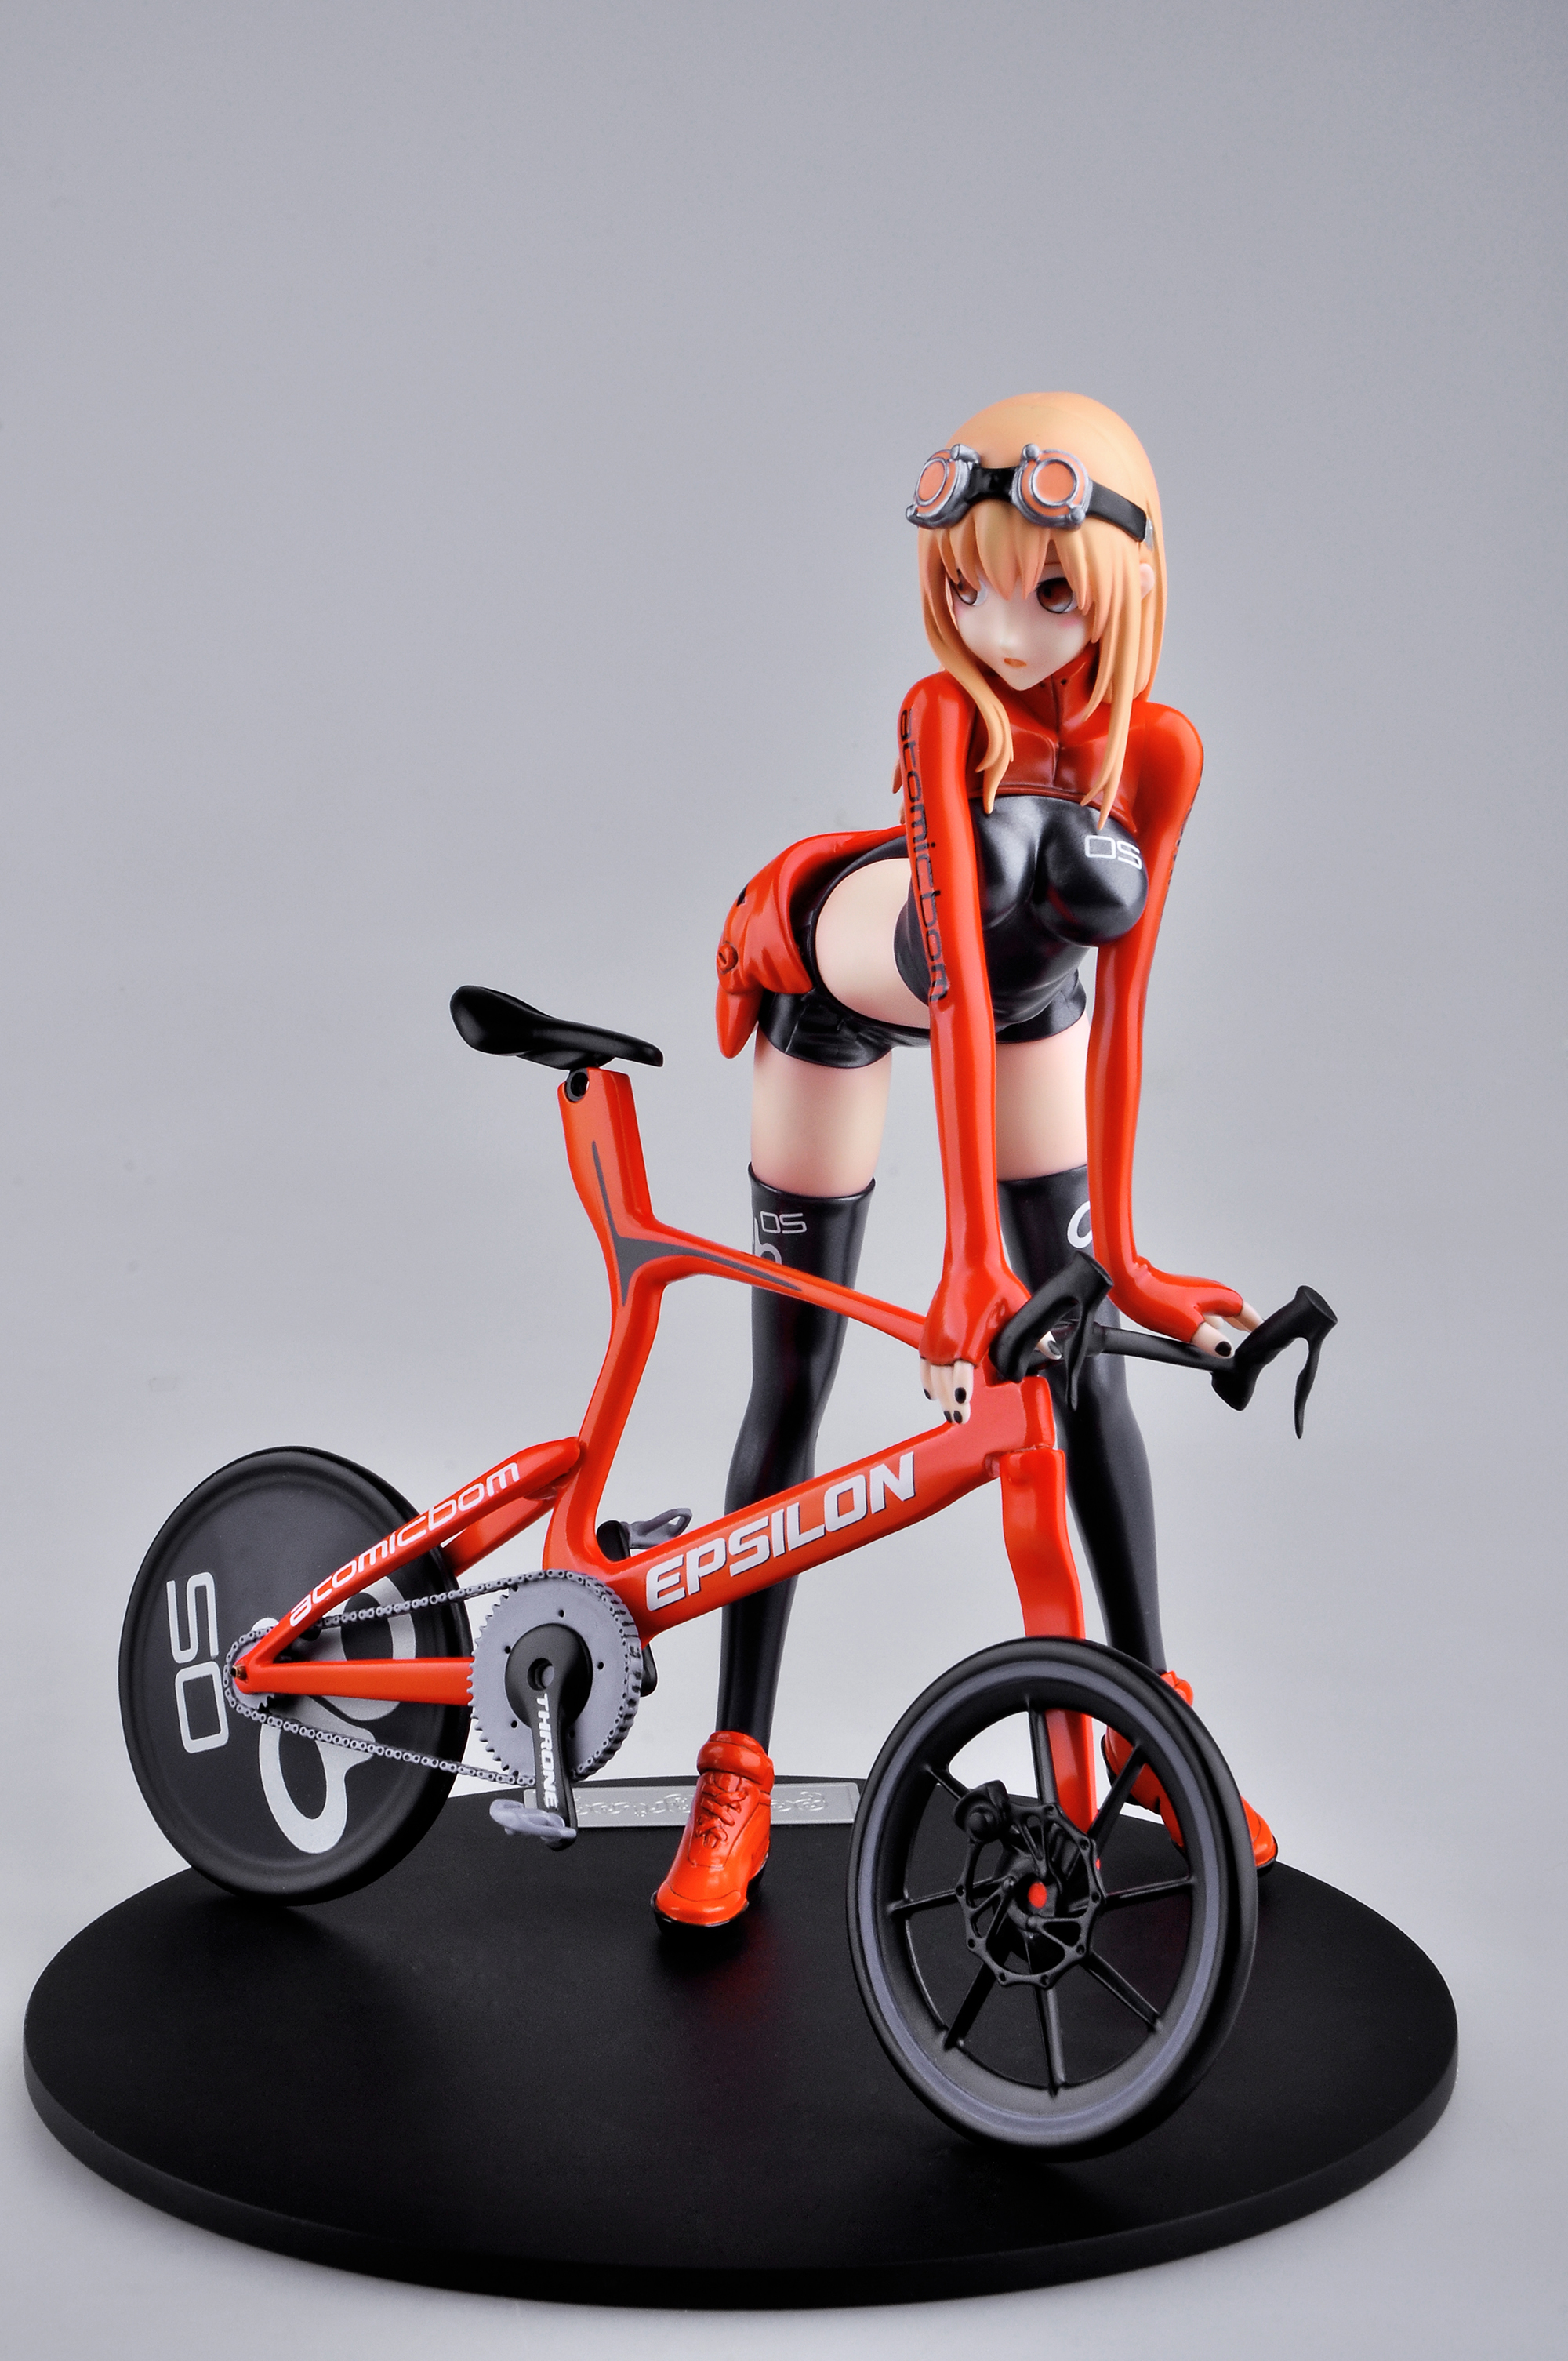 Bicycle & Girl Version 3 Figure by E2046 haruhichan.com E2046 Gathering Series figure 09